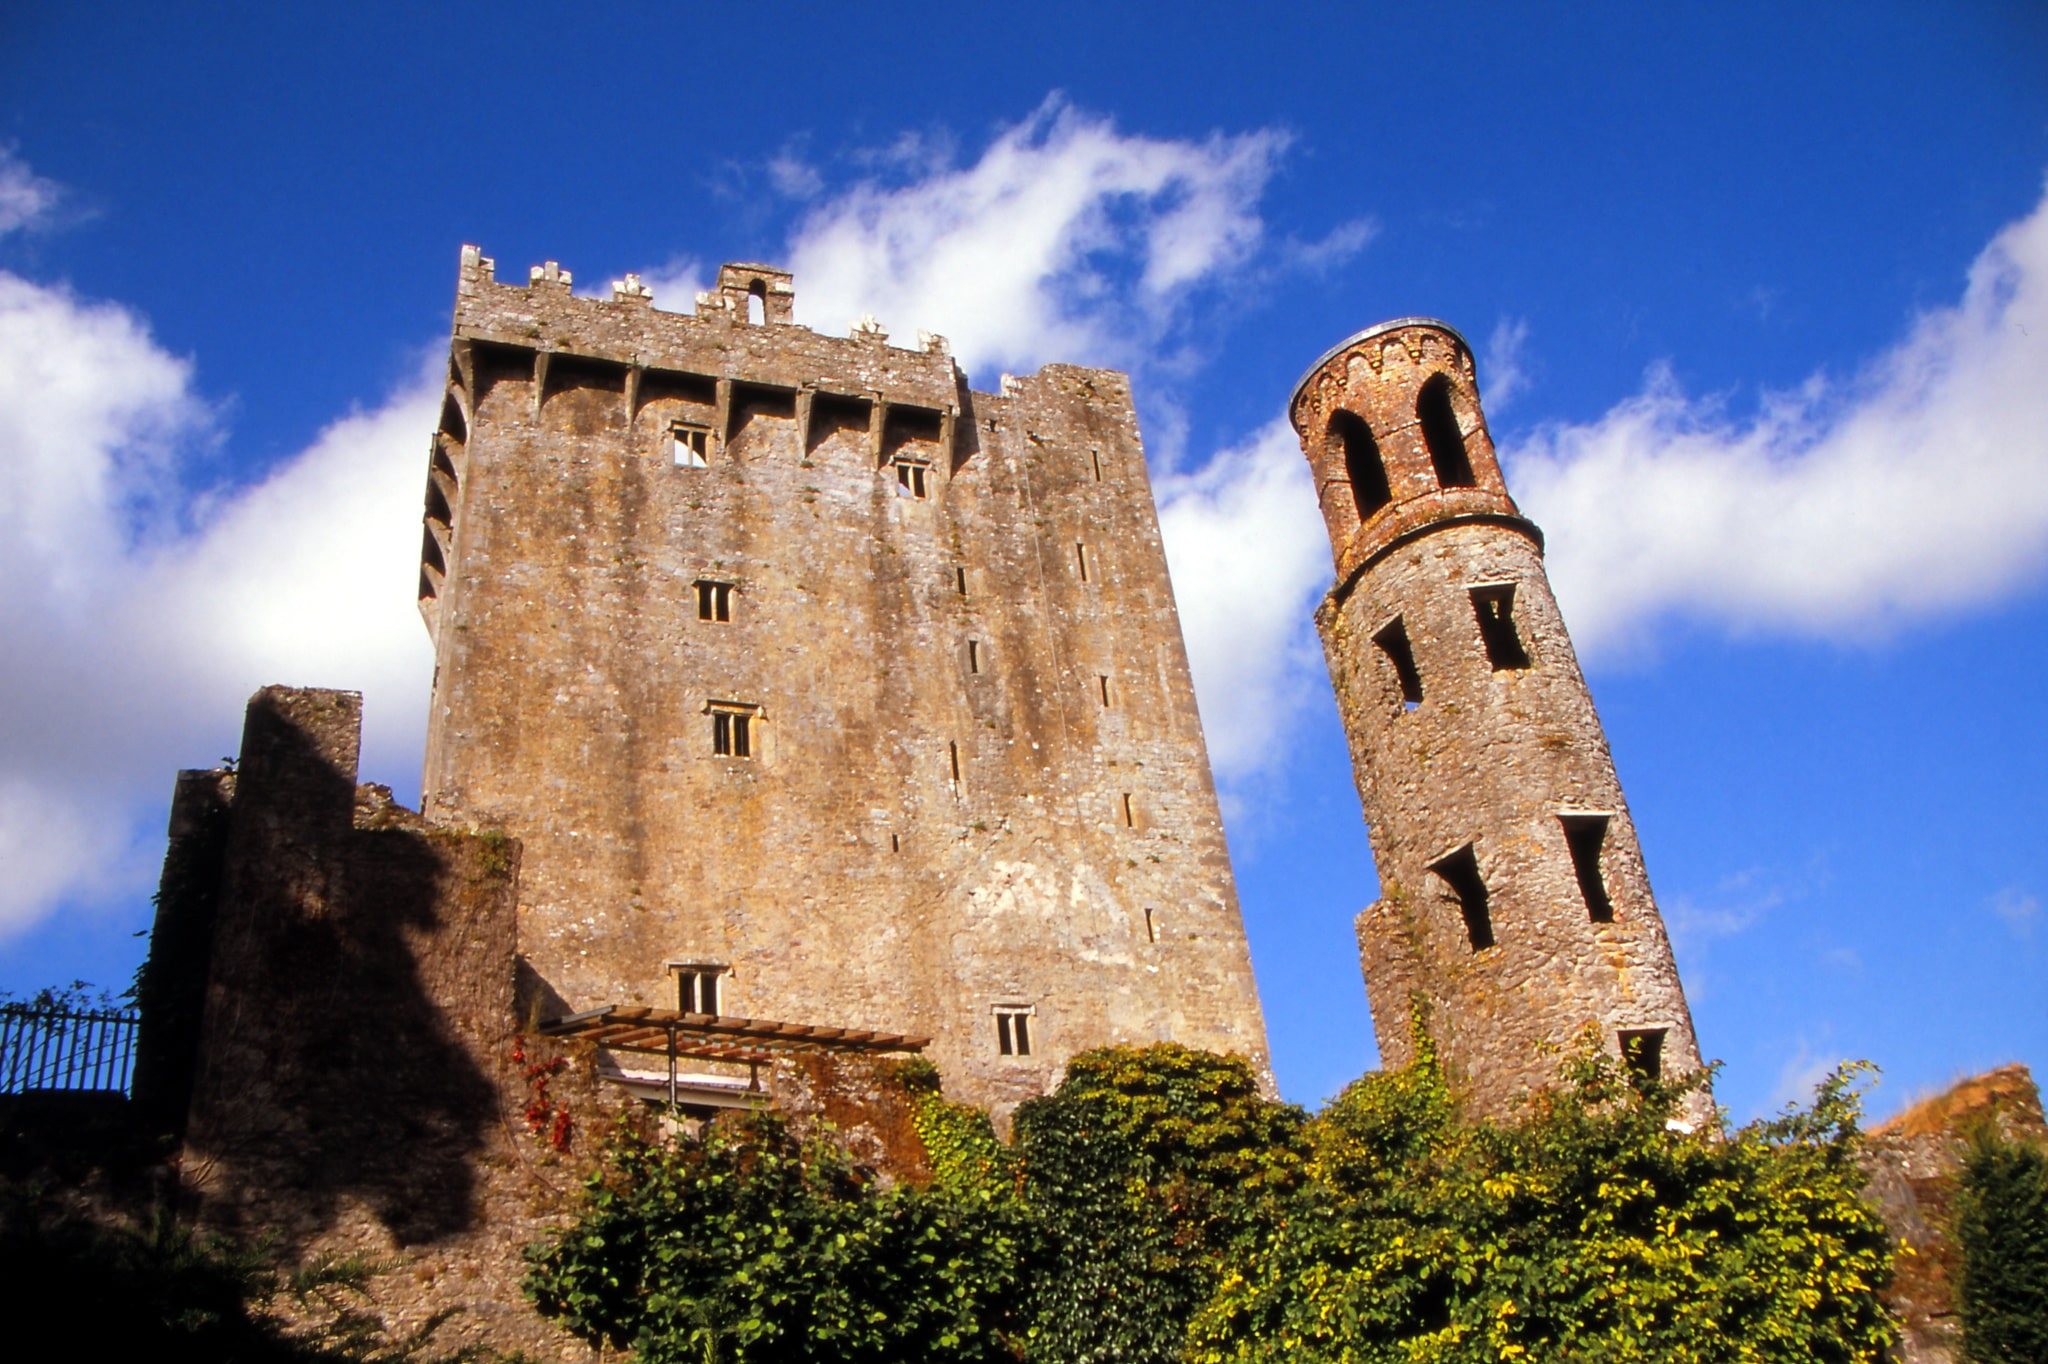 Blarney Castle is a fun place to visit in Ireland